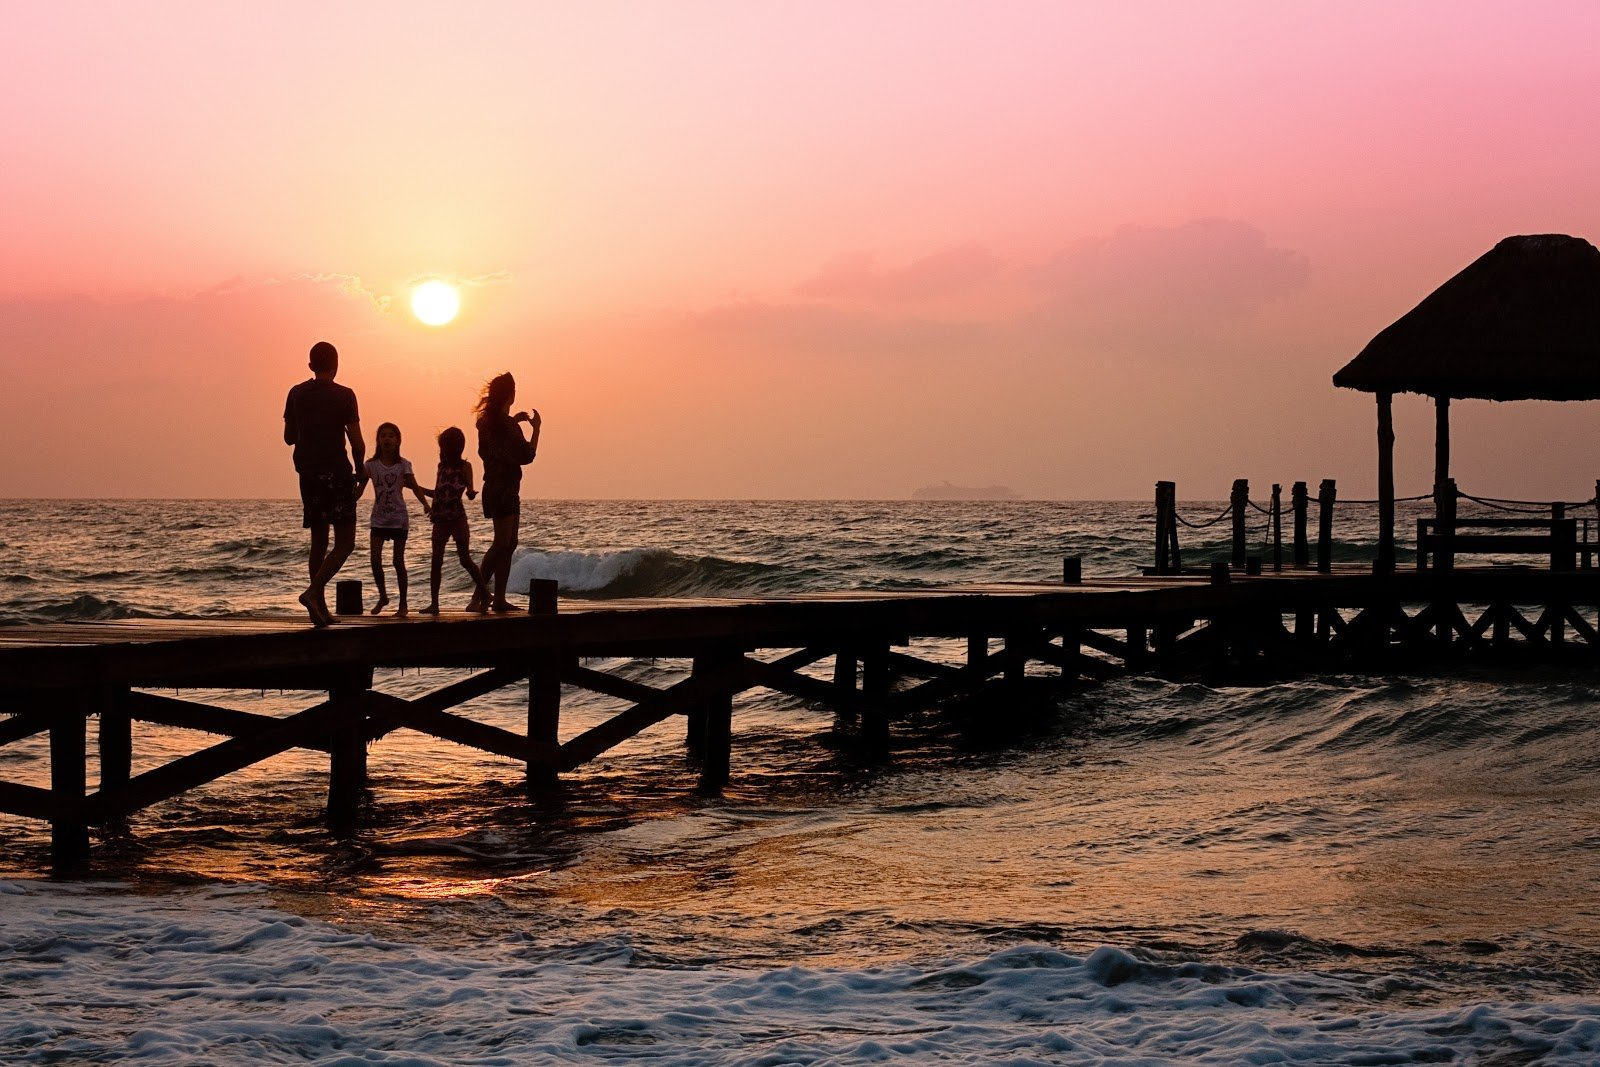 Family on a bridge with sunset